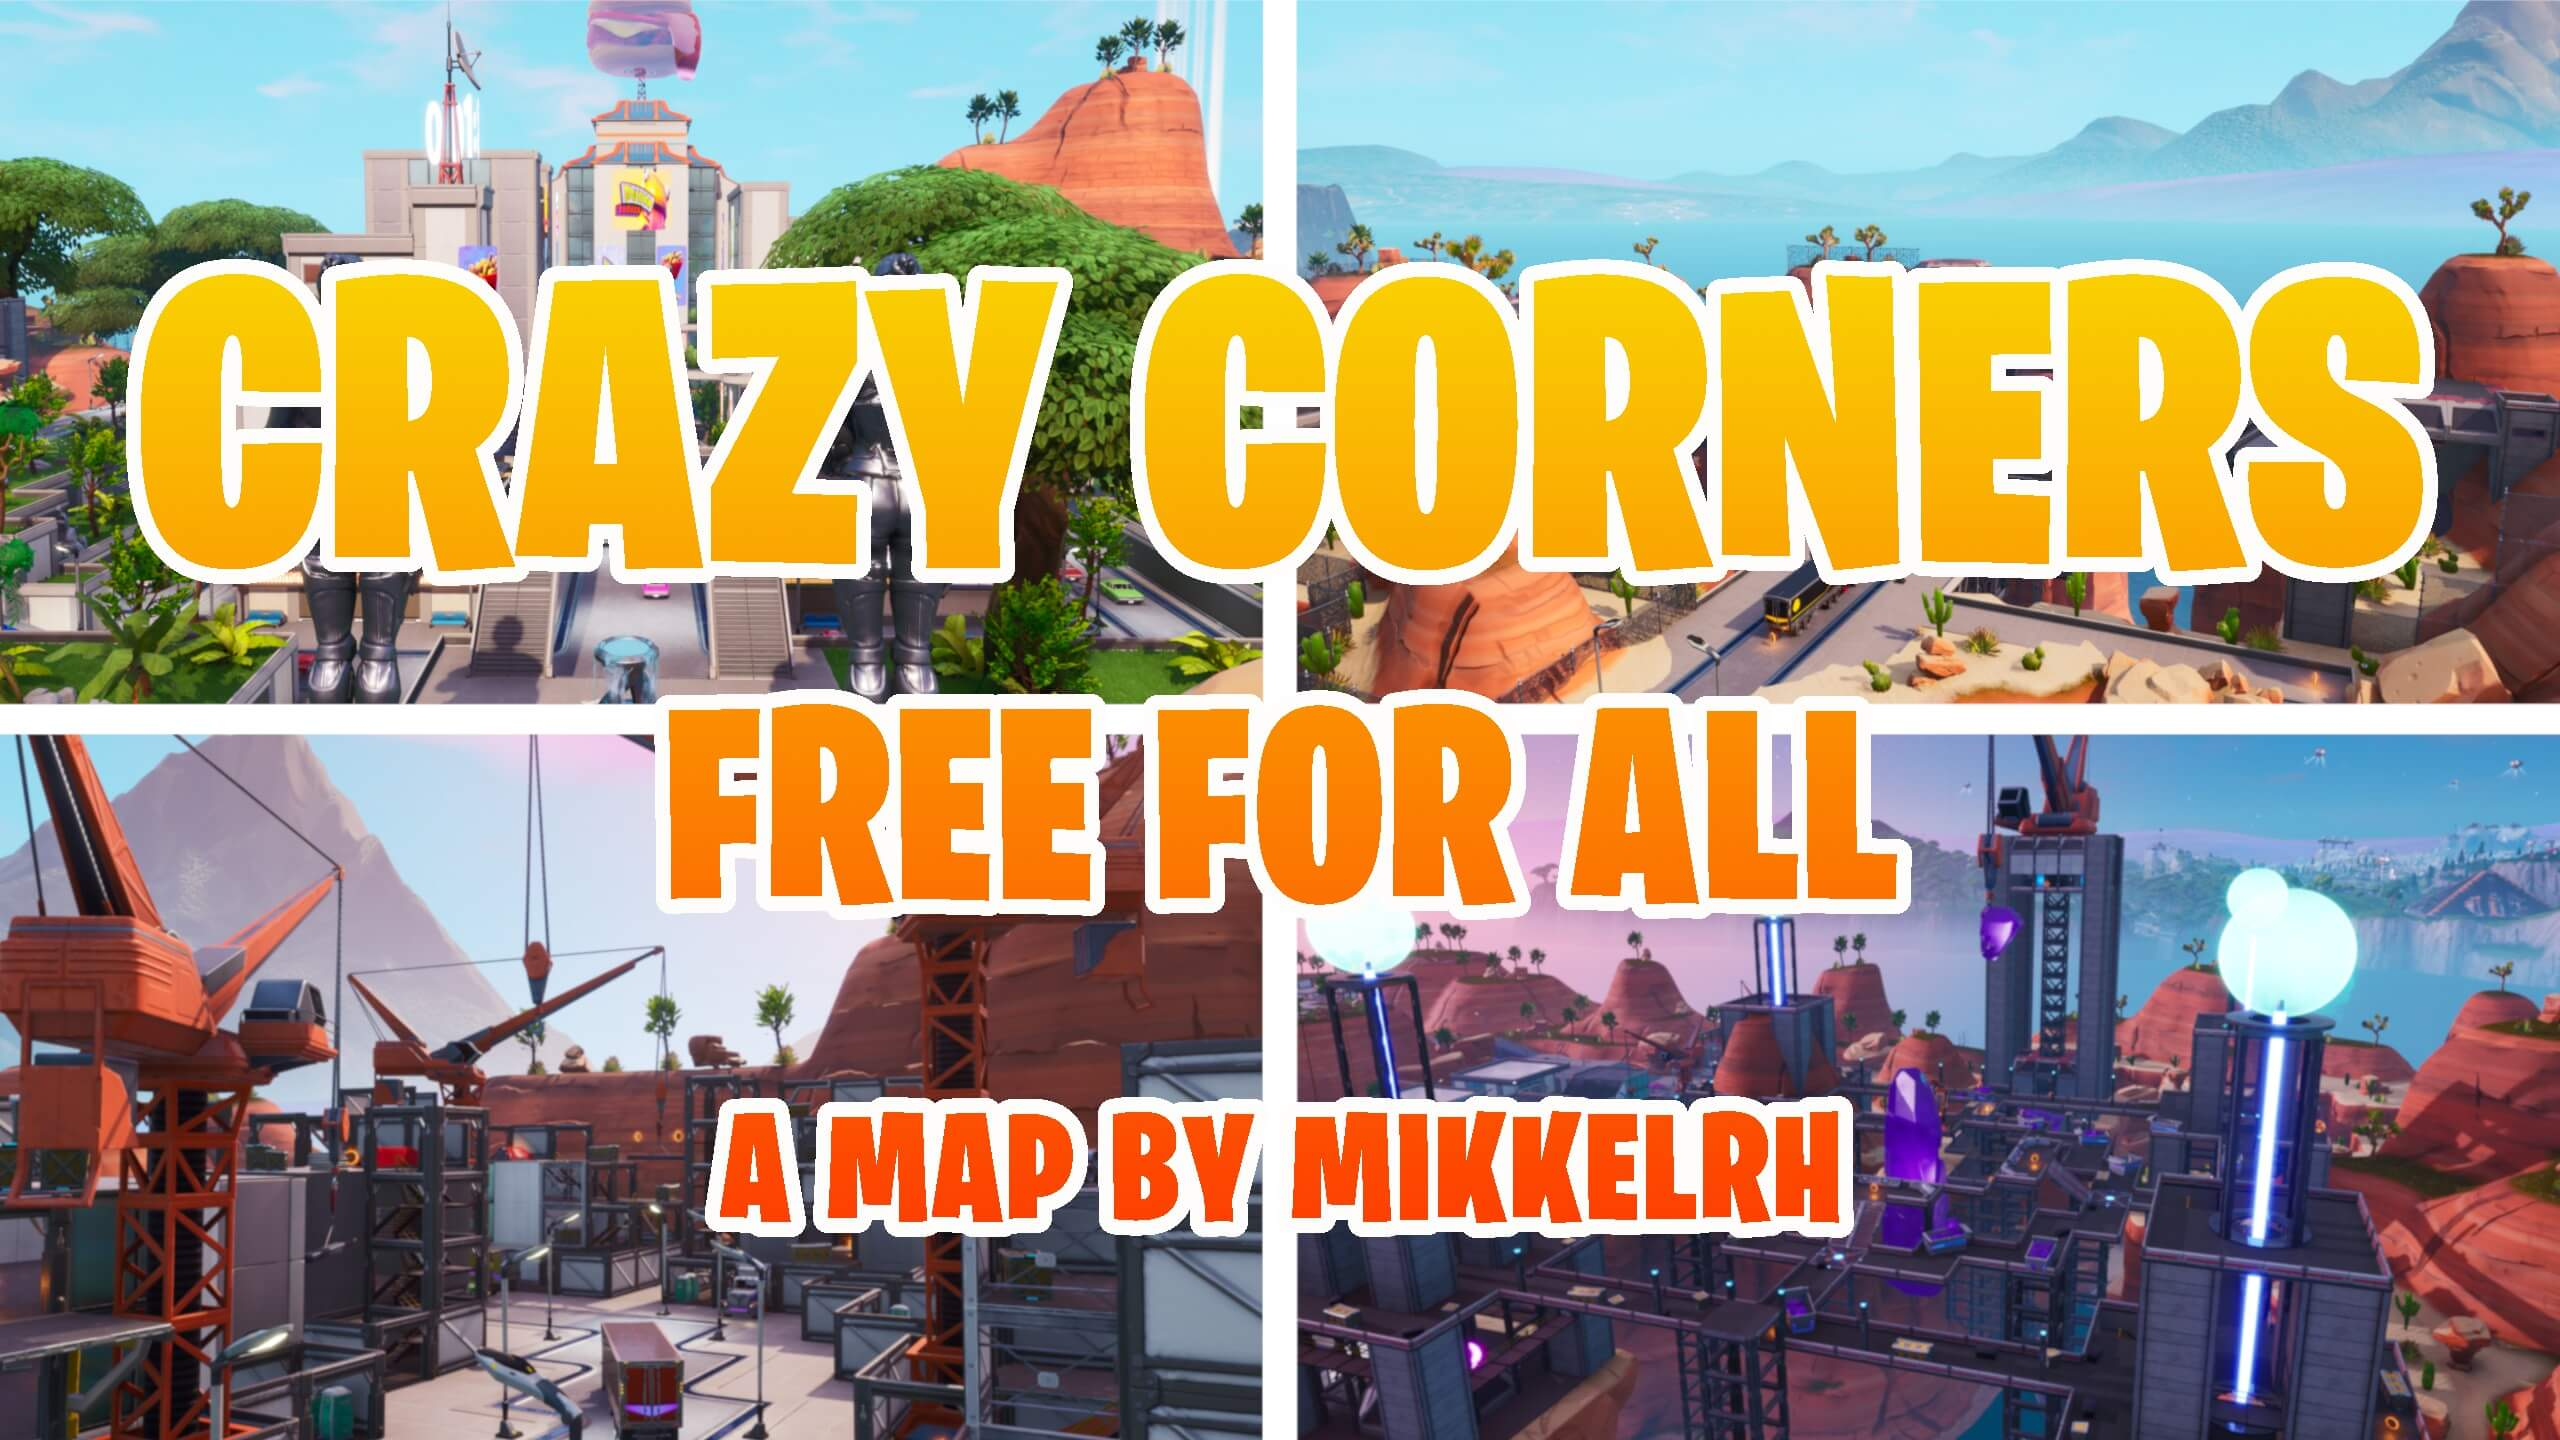 CRAZY CORNERS: FREE FOR ALL